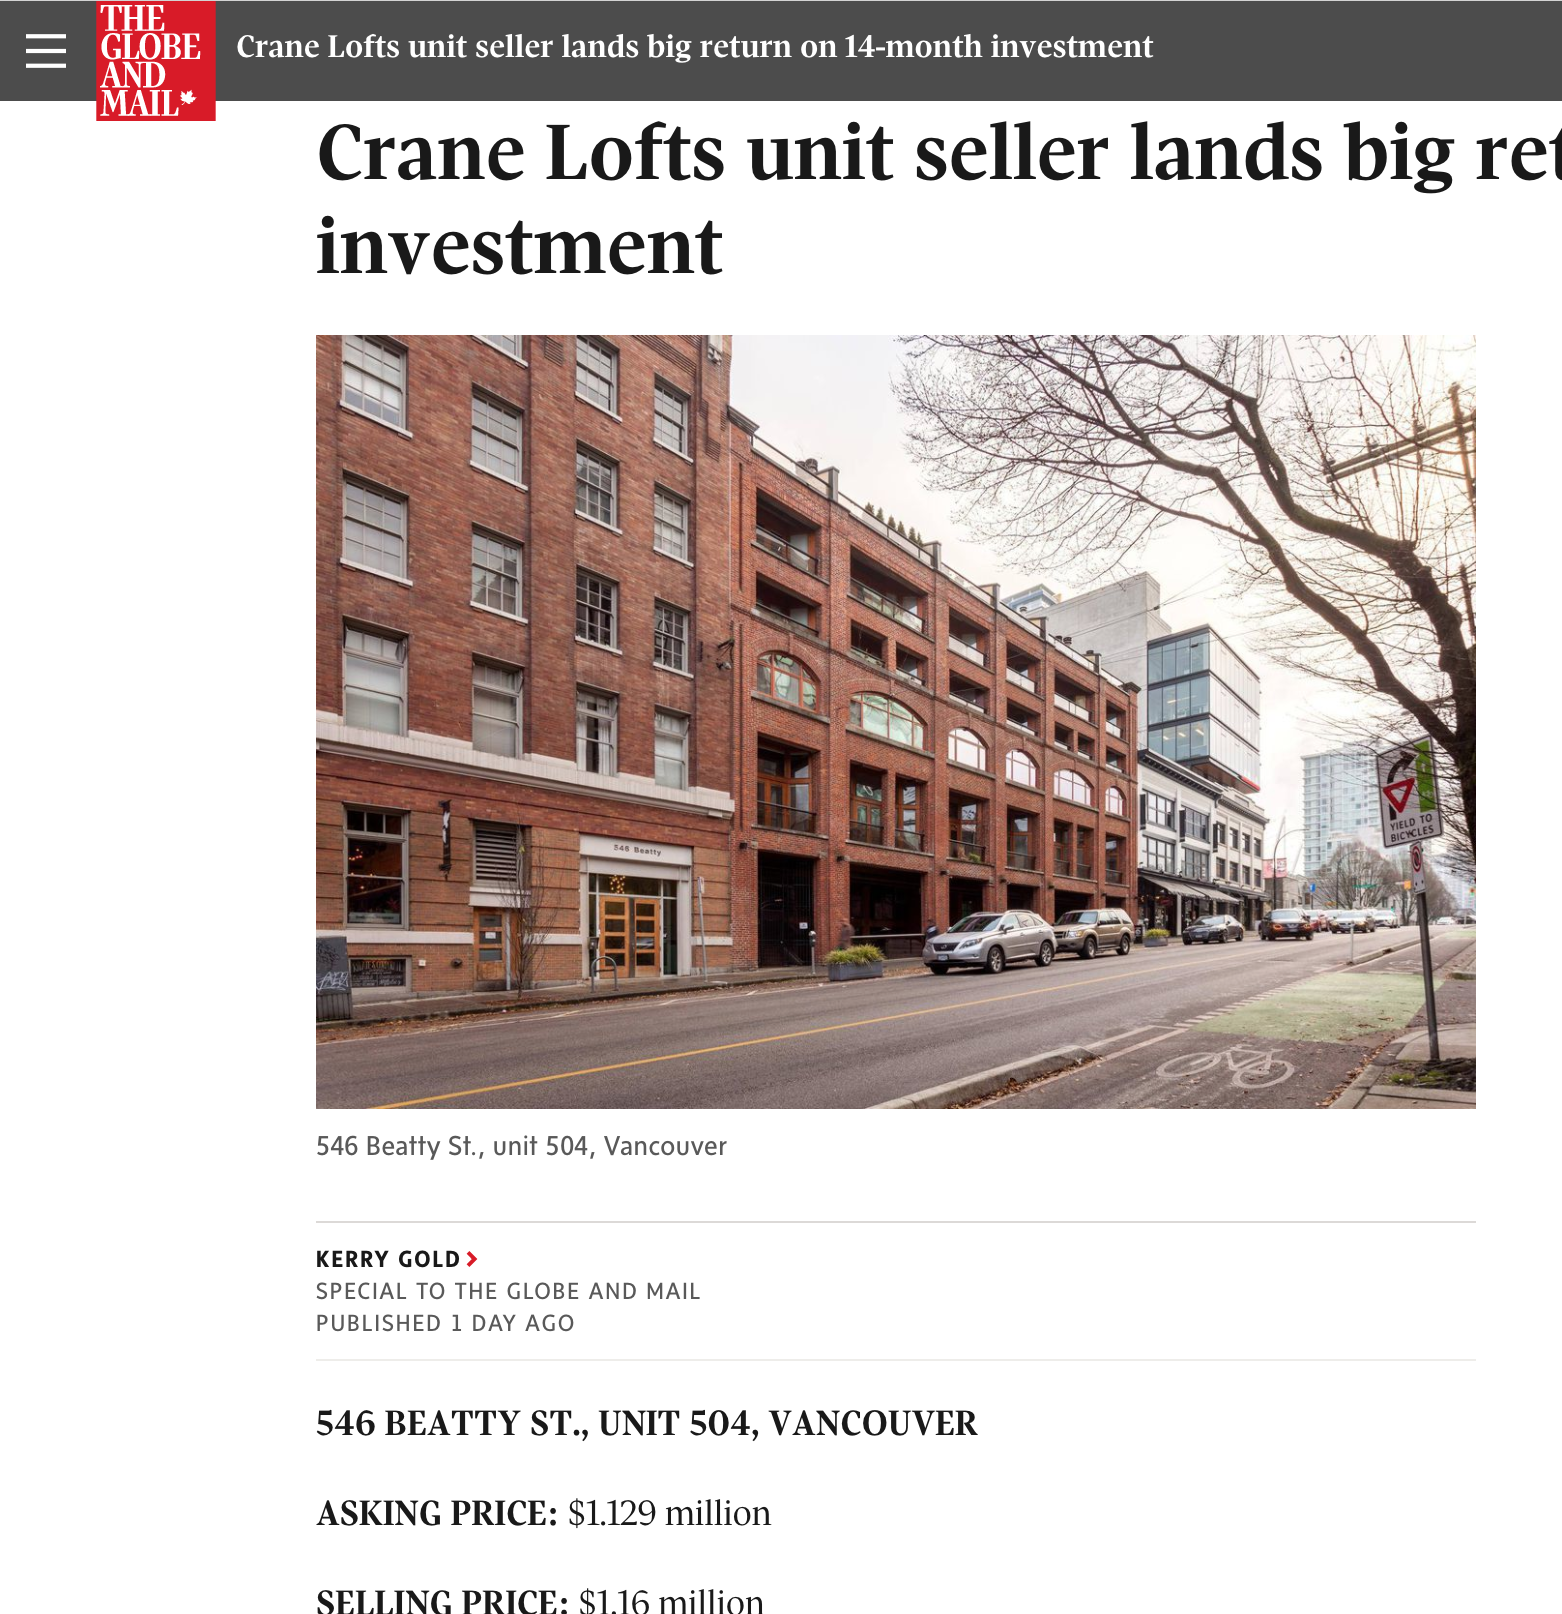 crane lofts globe and mail 546 beatty st a